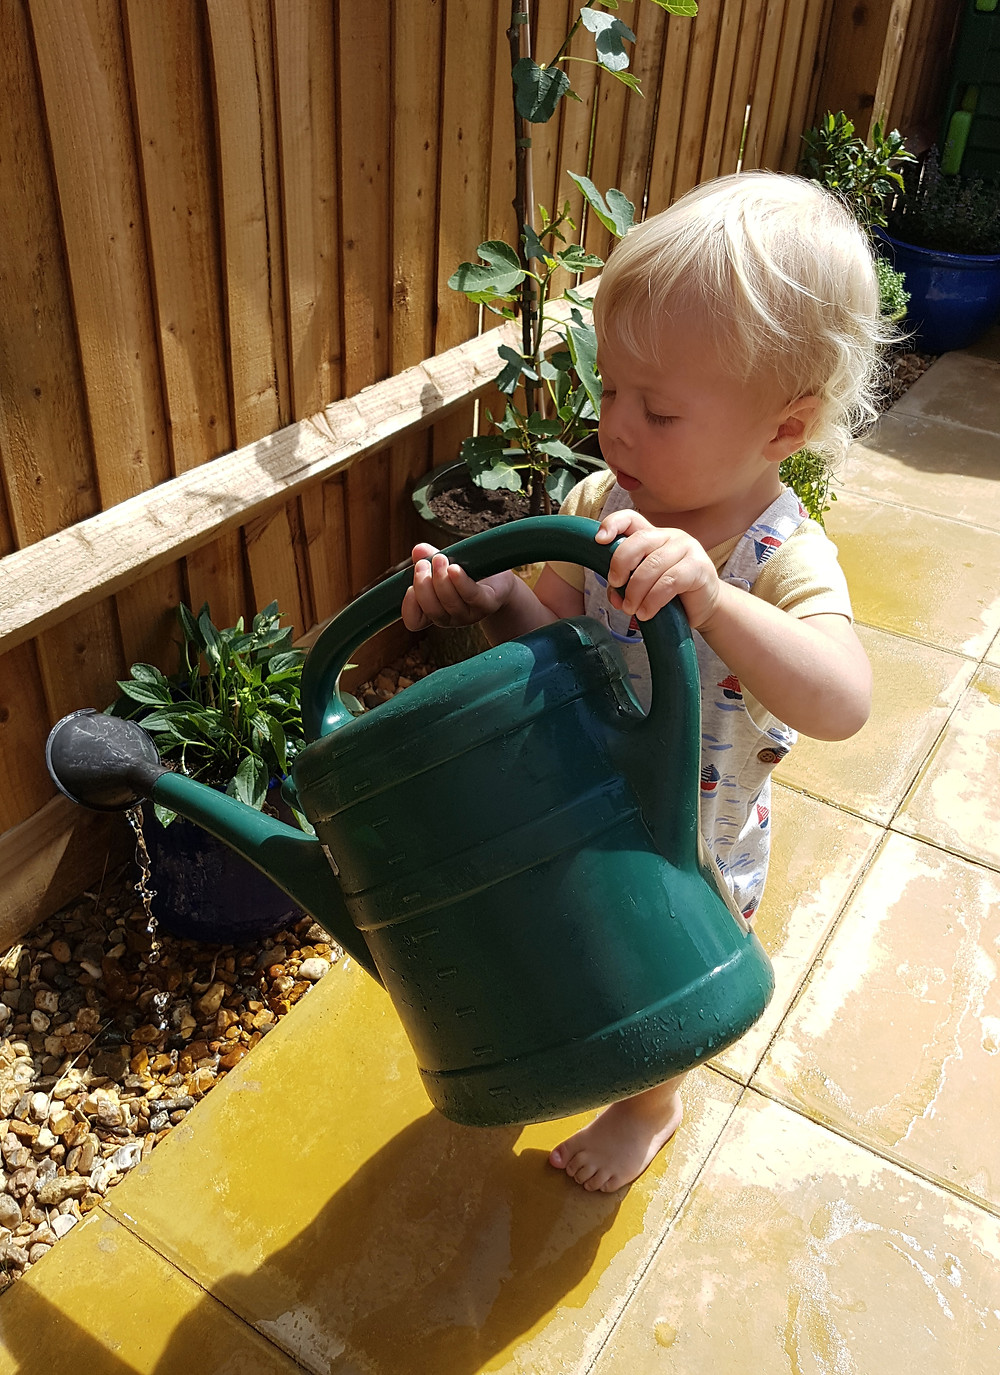 Toddler using watering can to water plants outdoors